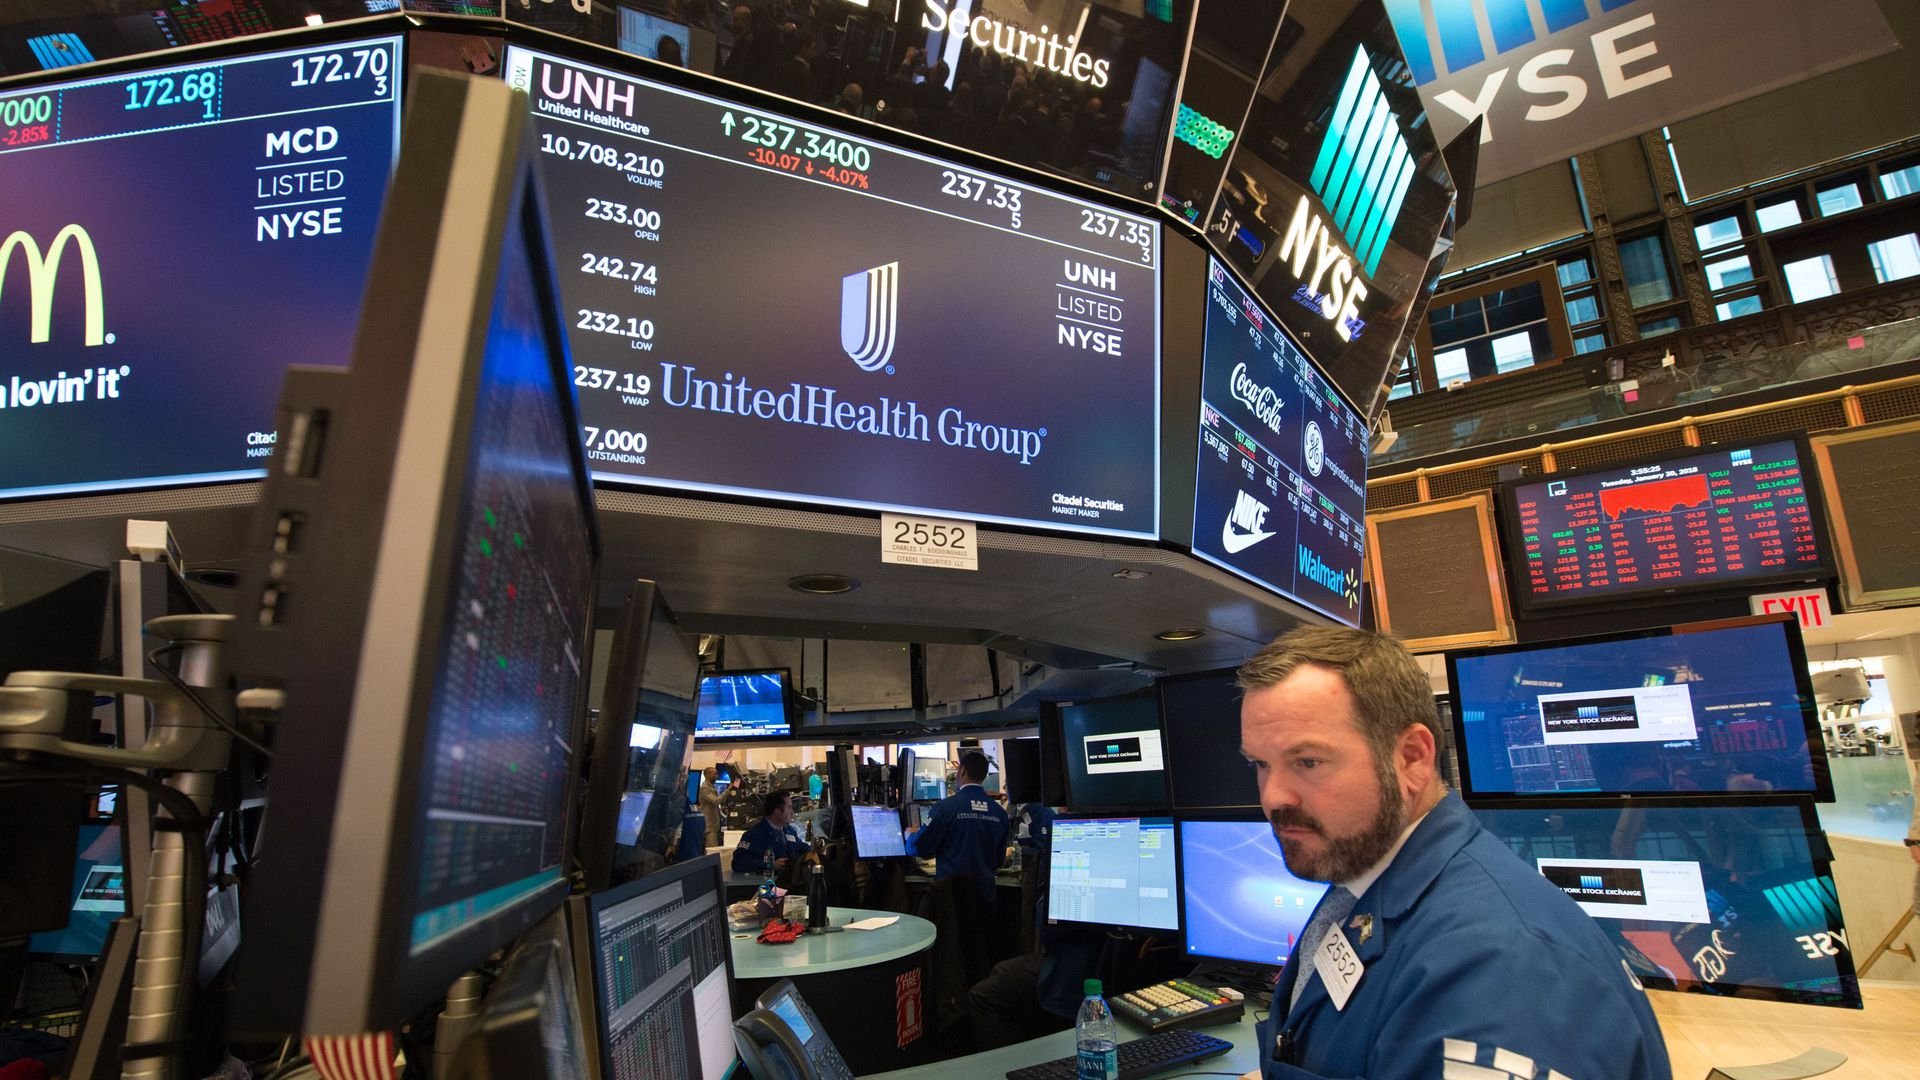 UnitedHealth Group's logo appears on a TV screen on a Wall Street trading floor with a broker standing underneath.